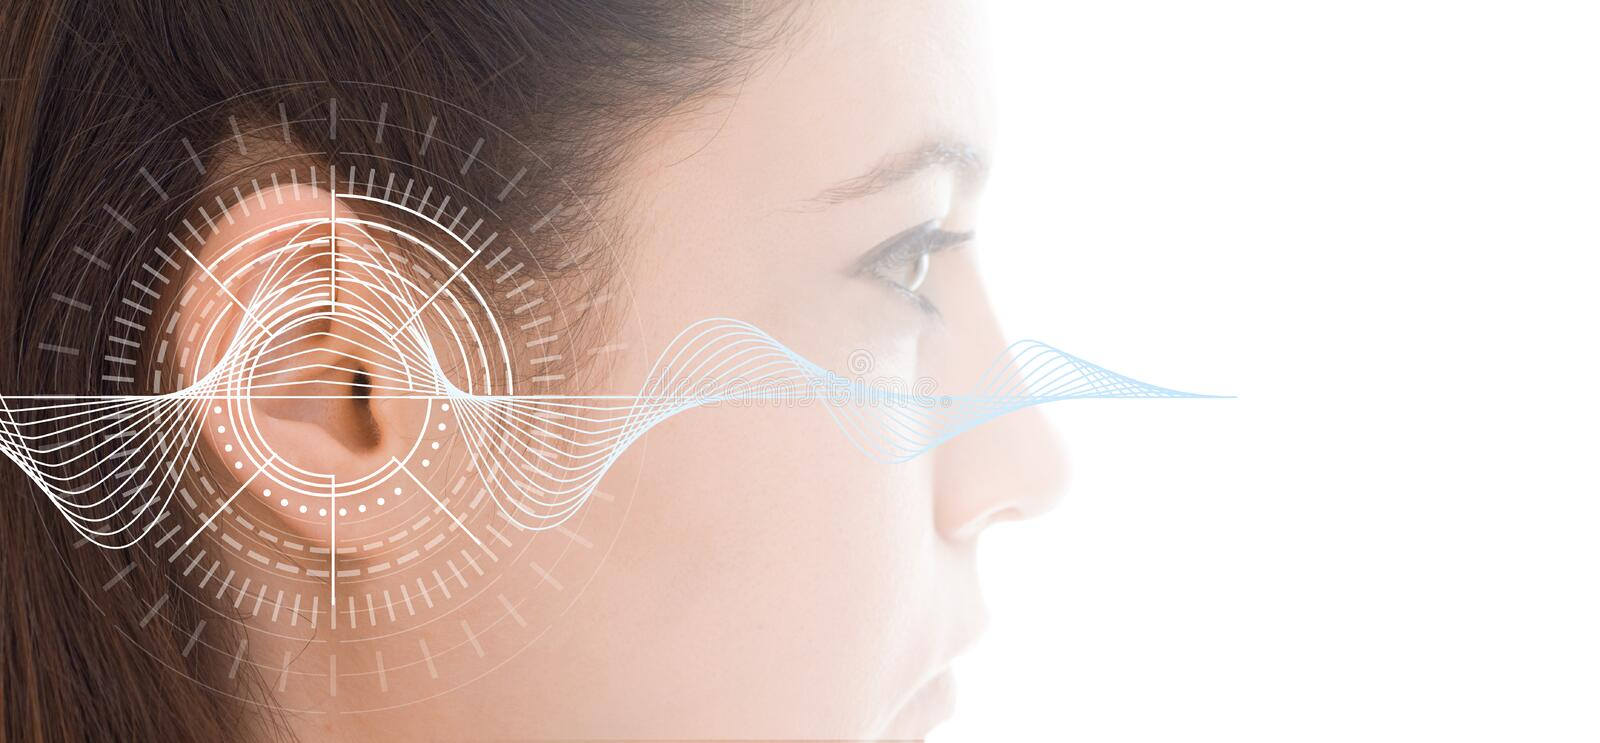 Hearing test showing ear of young woman with sound waves simulation technology royalty free stock photography